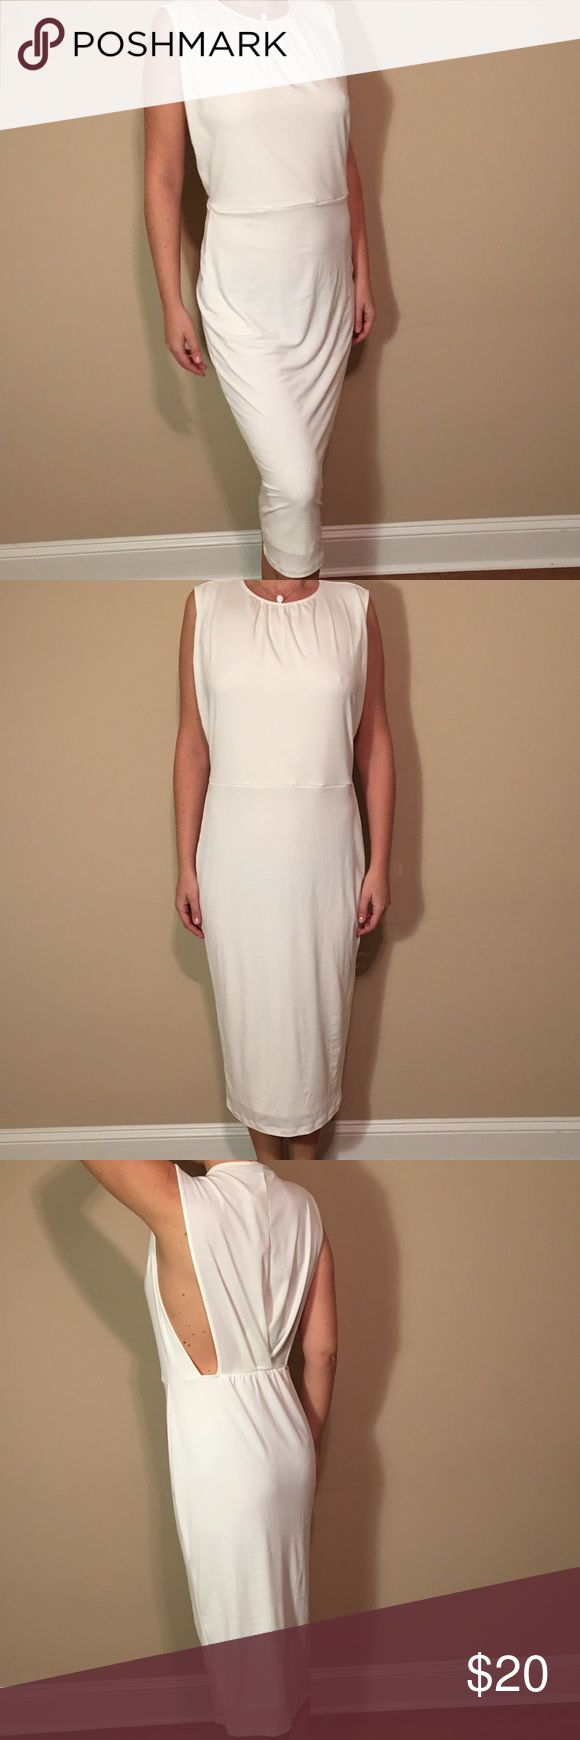 "ASOS long white dress with open sides, Size:10 ASOS Long White Dress with open sides. Size : 10 (Model is 5'8"" and 136 pounds) New with tags, perfect condition! Comes from a pet and smoke free home. ASOS Dresses Maxi"